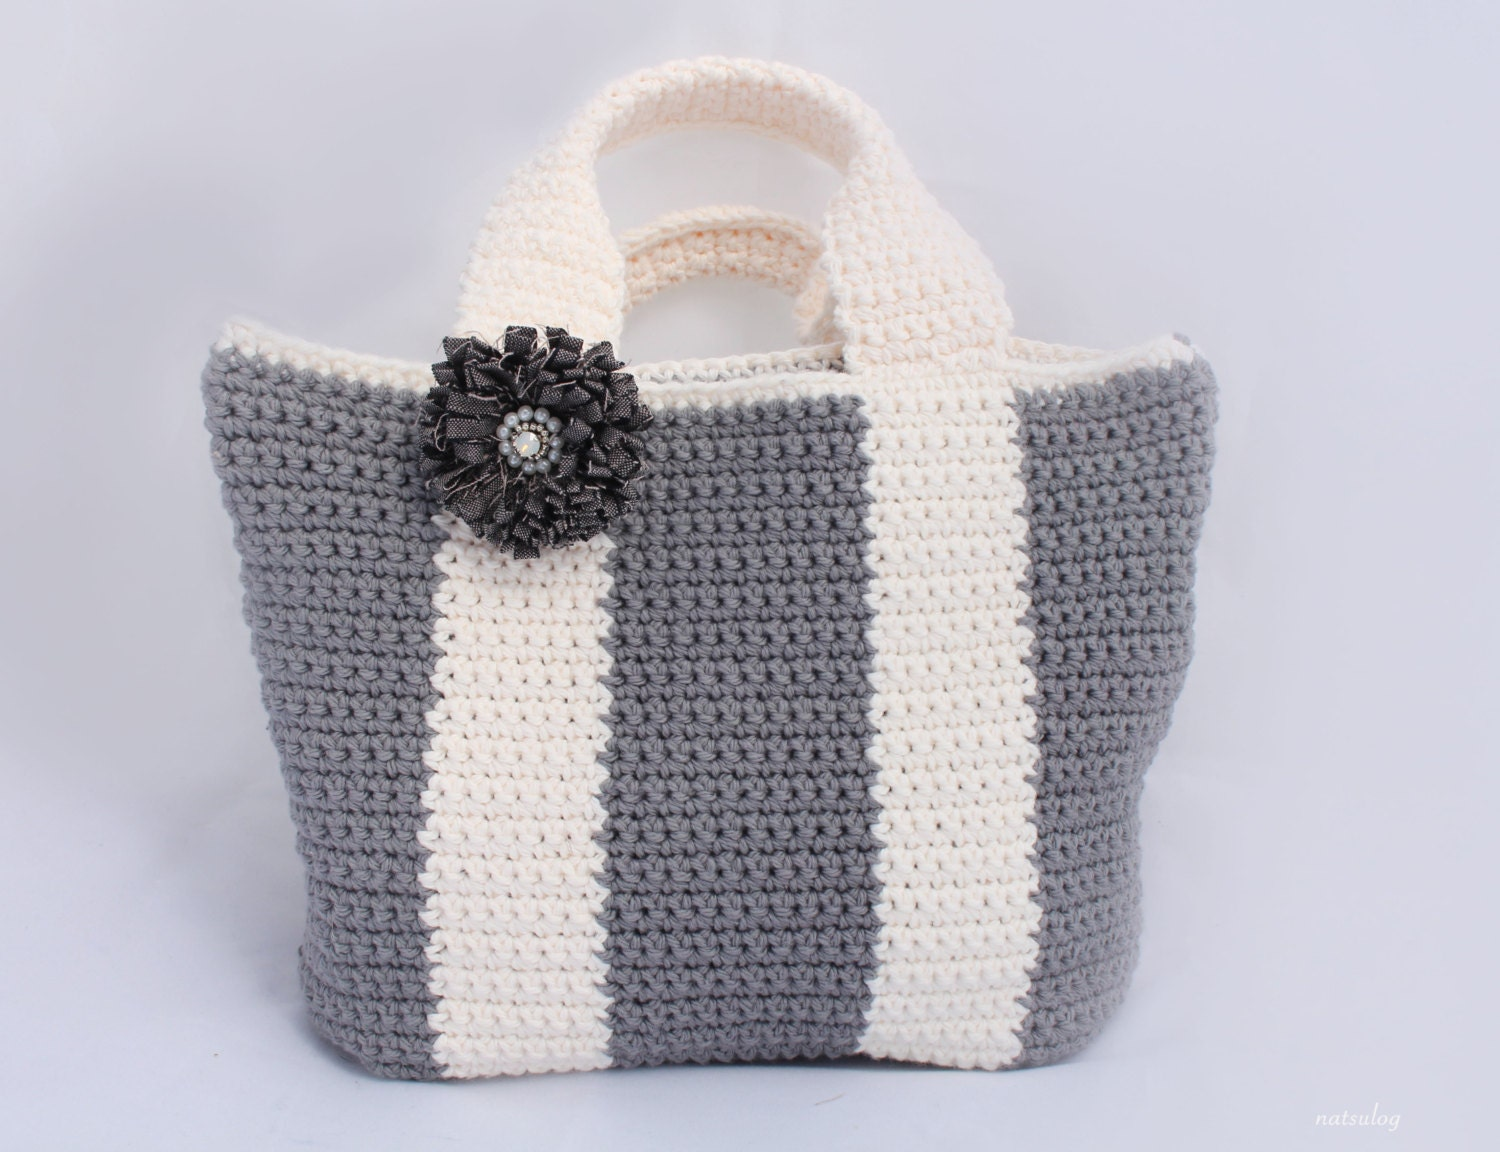 Easy Crochet Tote Bag Pattern : Crochet simple tote bag pattern Bicolor bag Crochet by Natsulog